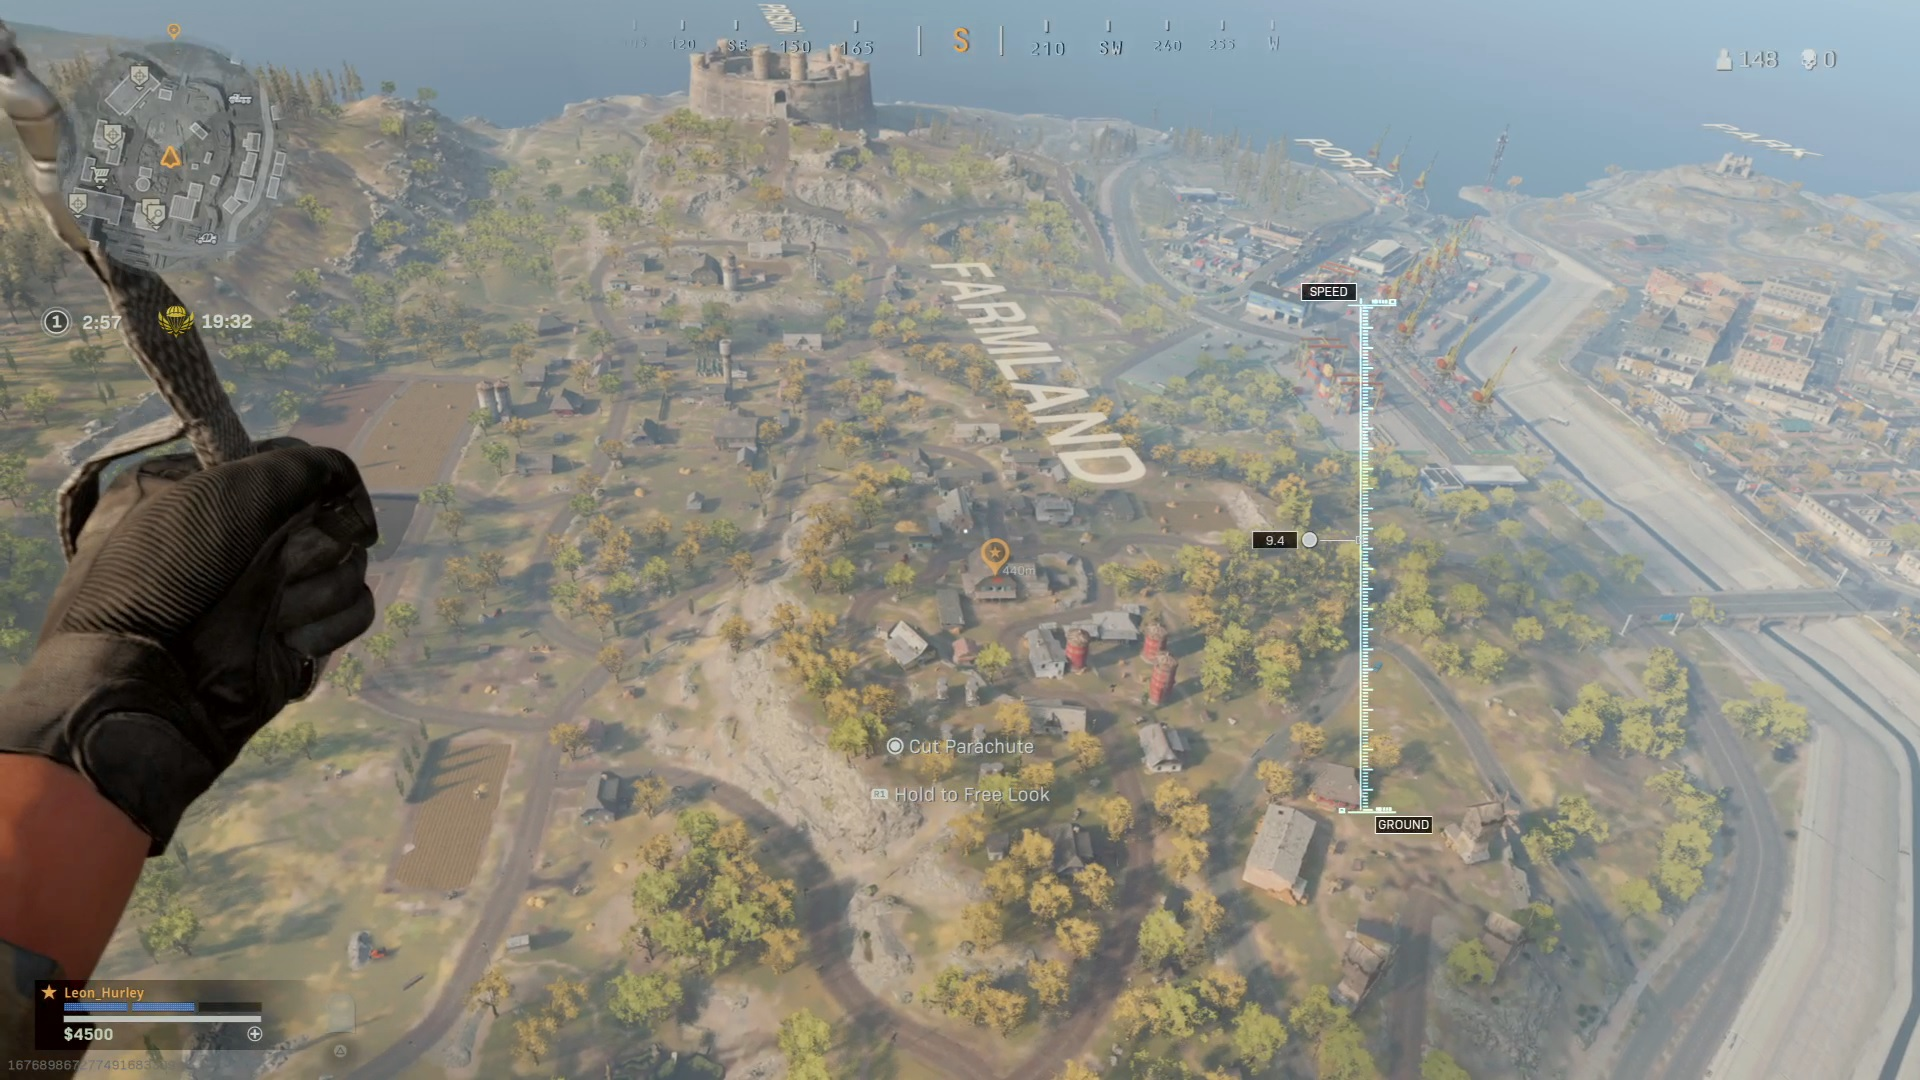 Get The Farmland Code In Warzone And See The Day 1 Tease For The Next Call Of Duty Gamesradar